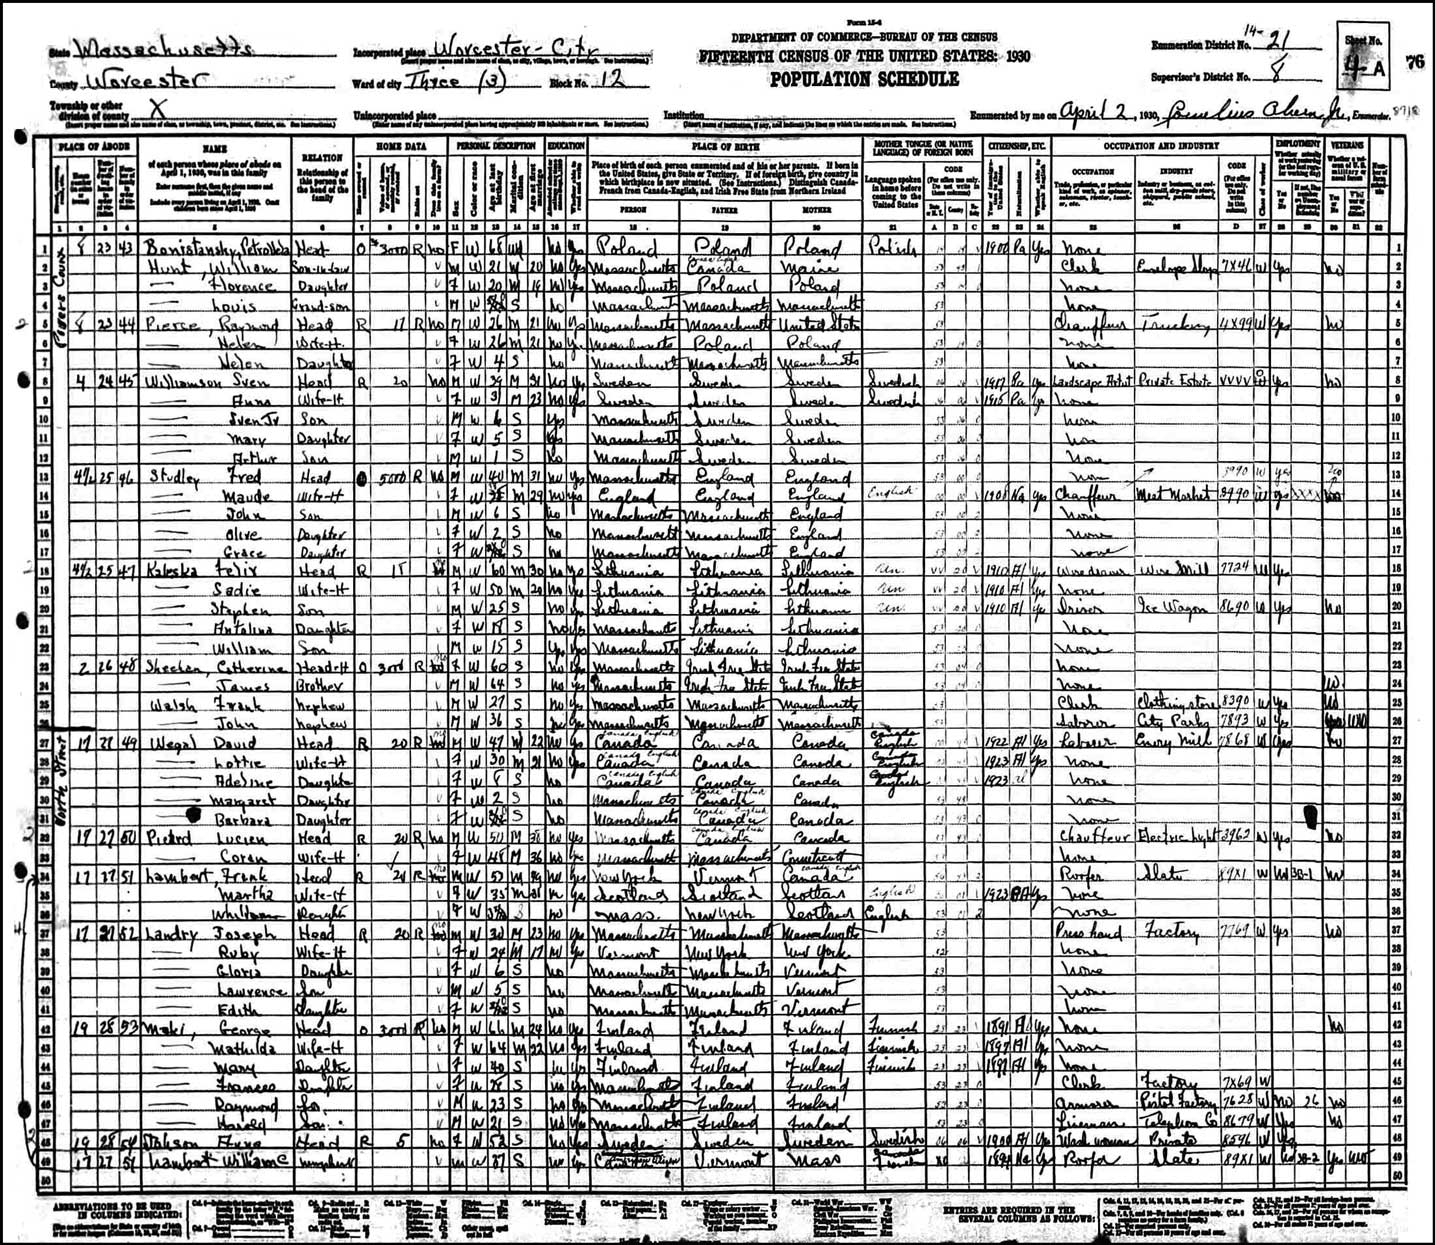 1930 census records california census records california census